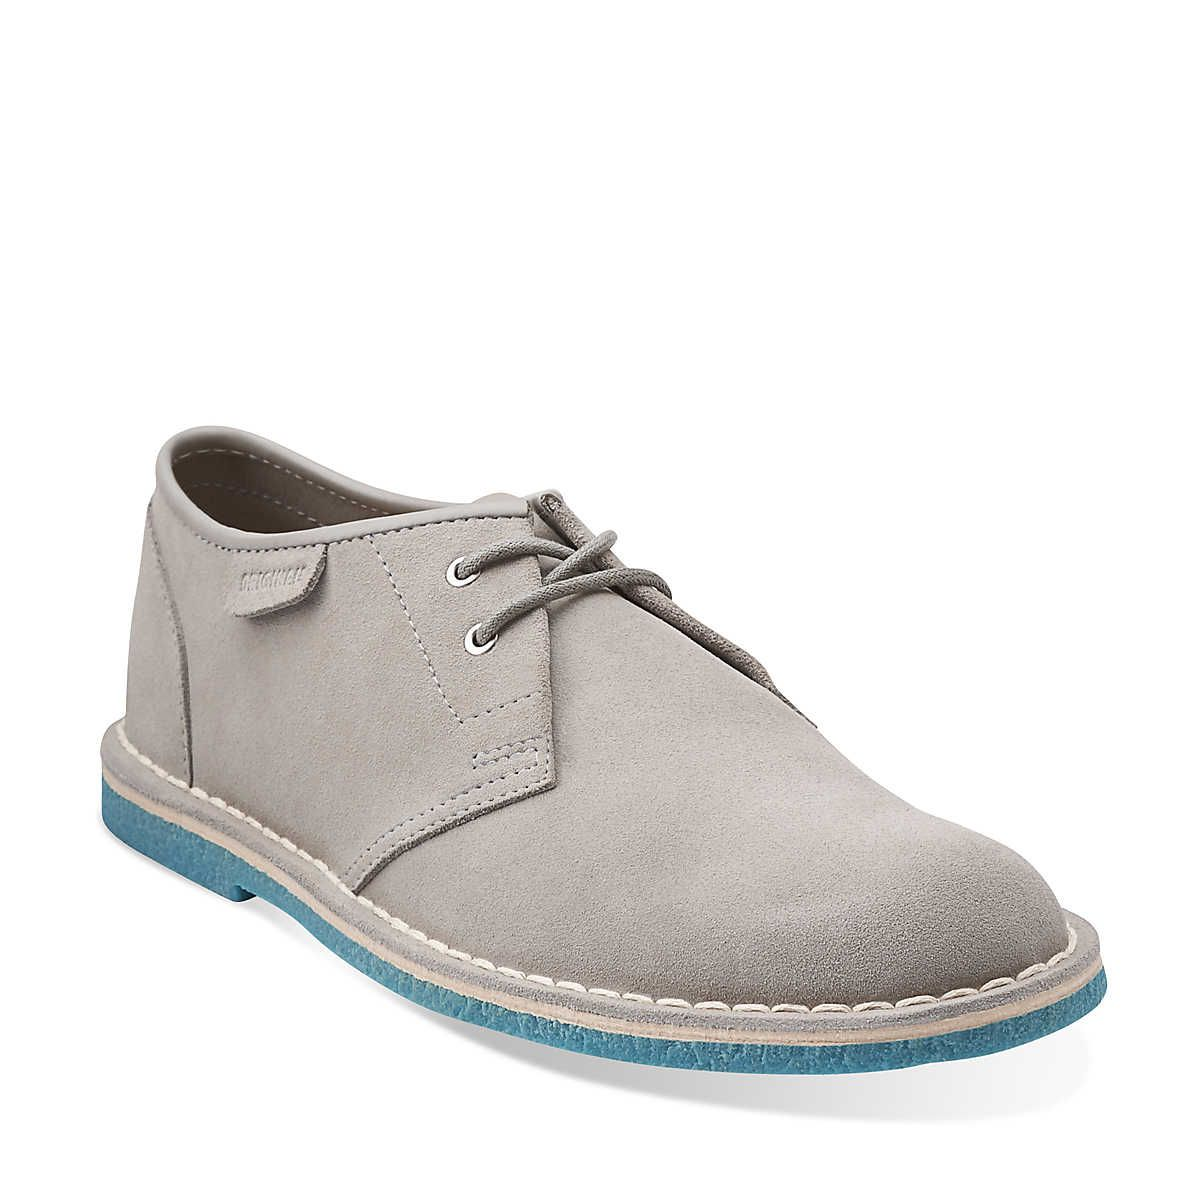 98718629 Jink in Grey Suede / Turquoise Crepe - Mens Shoes from Clarks ...